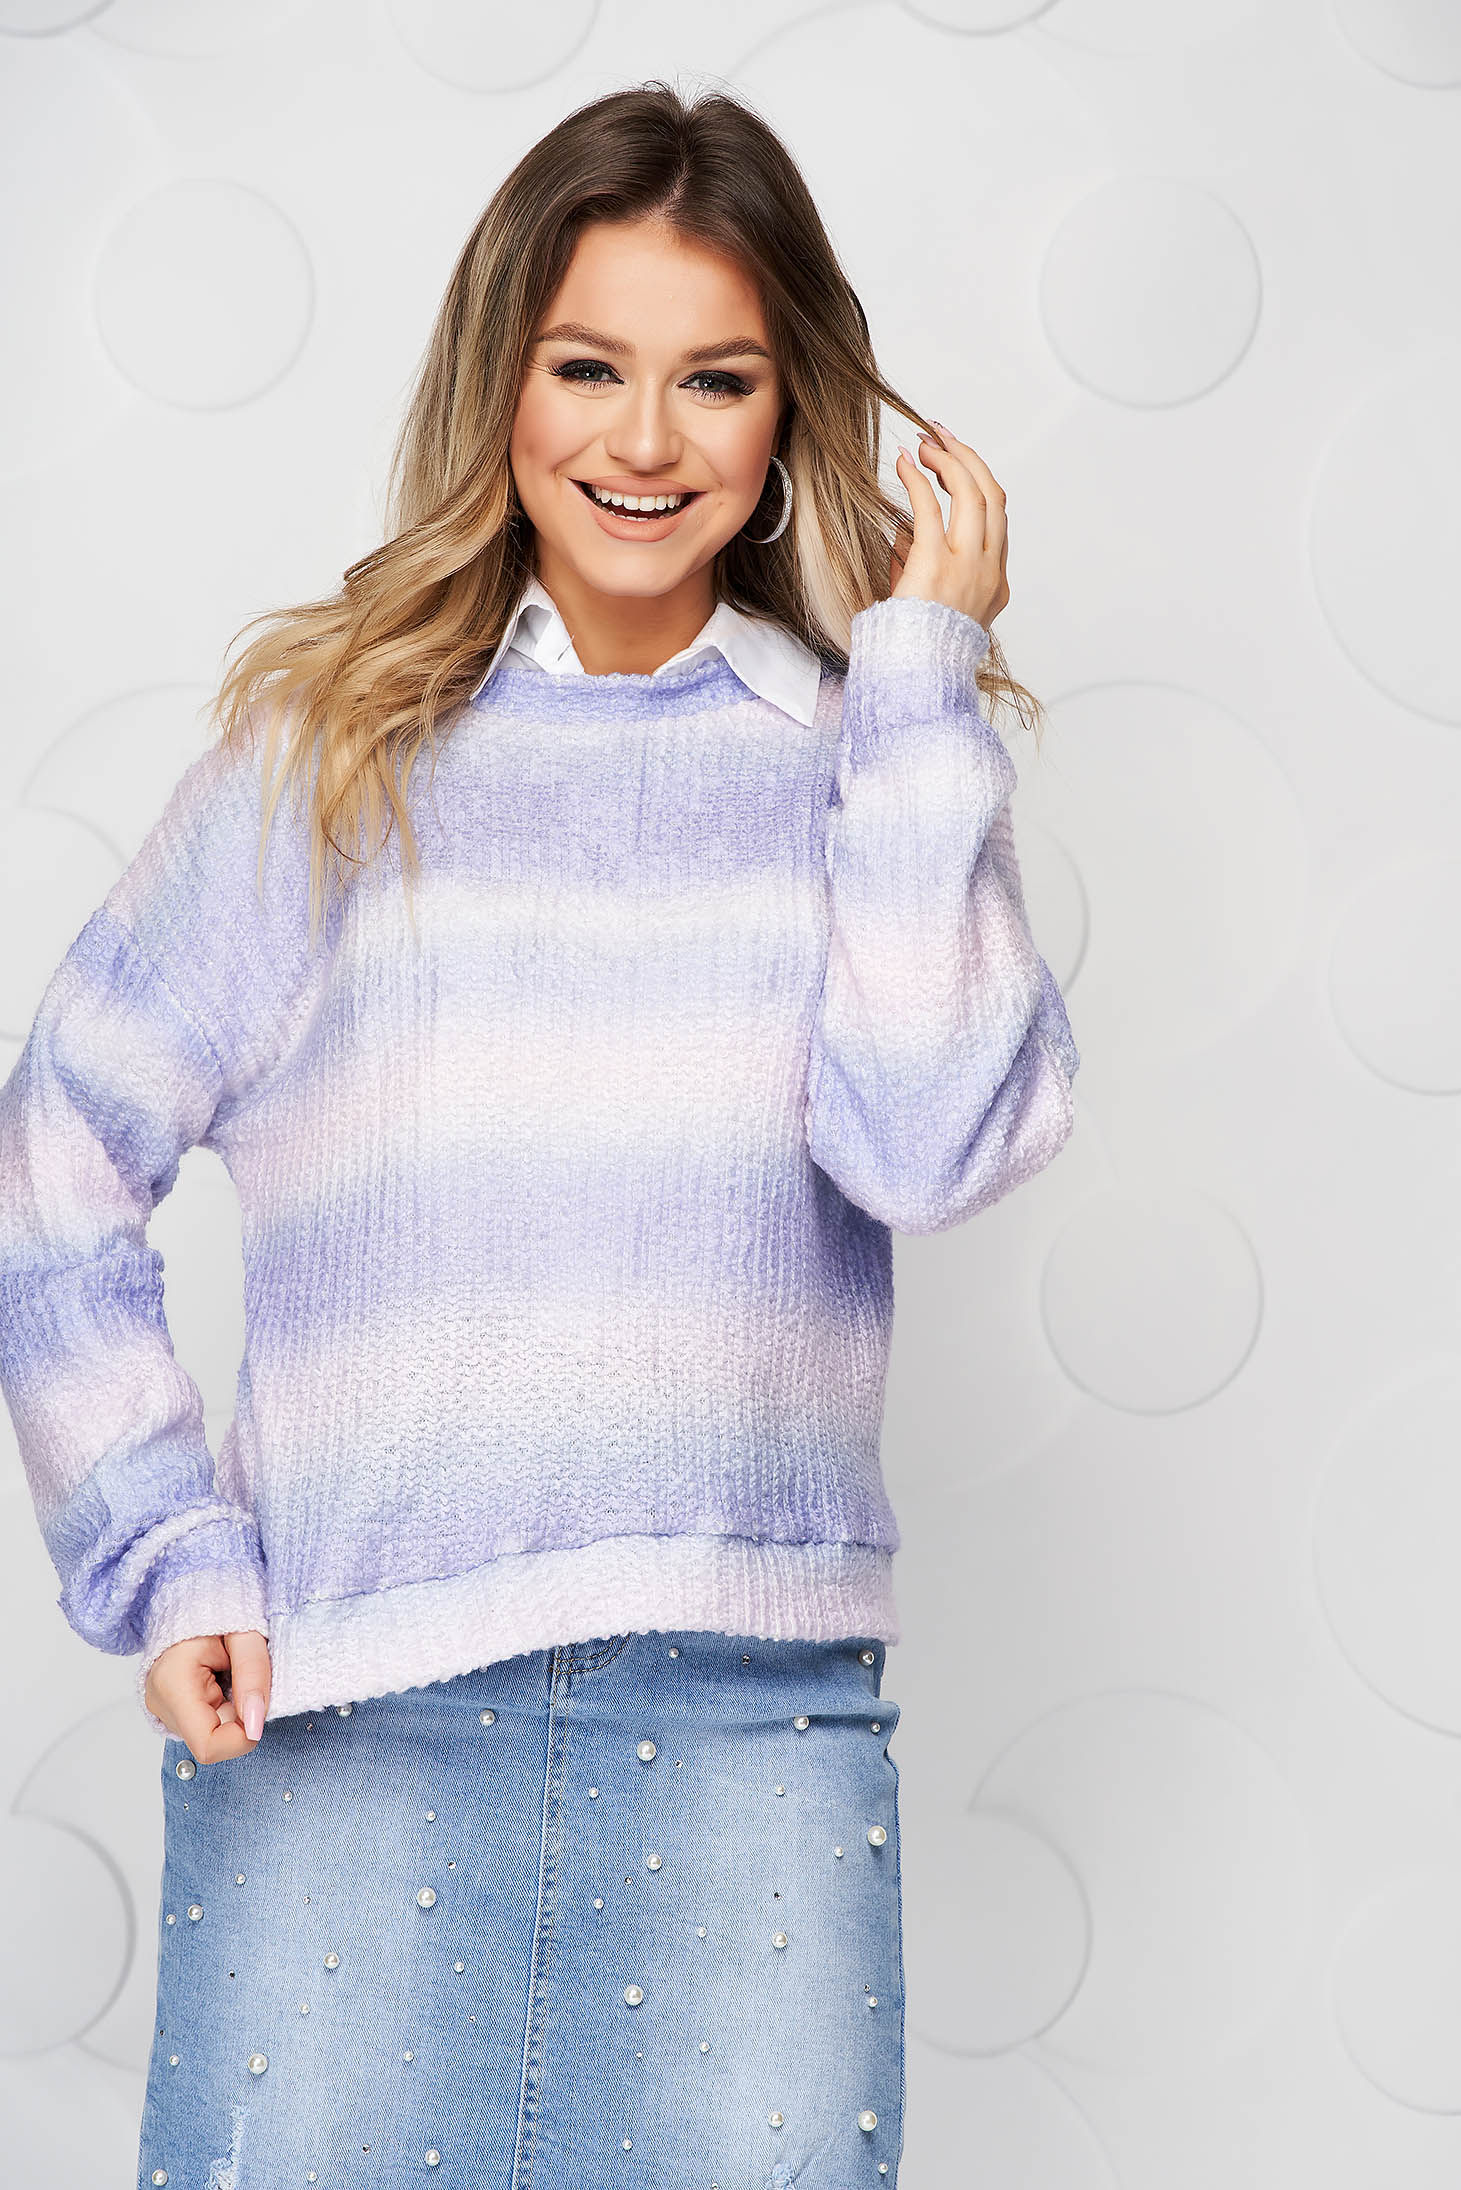 Women`s blouse purple knitted loose fit from fluffy fabric degrade